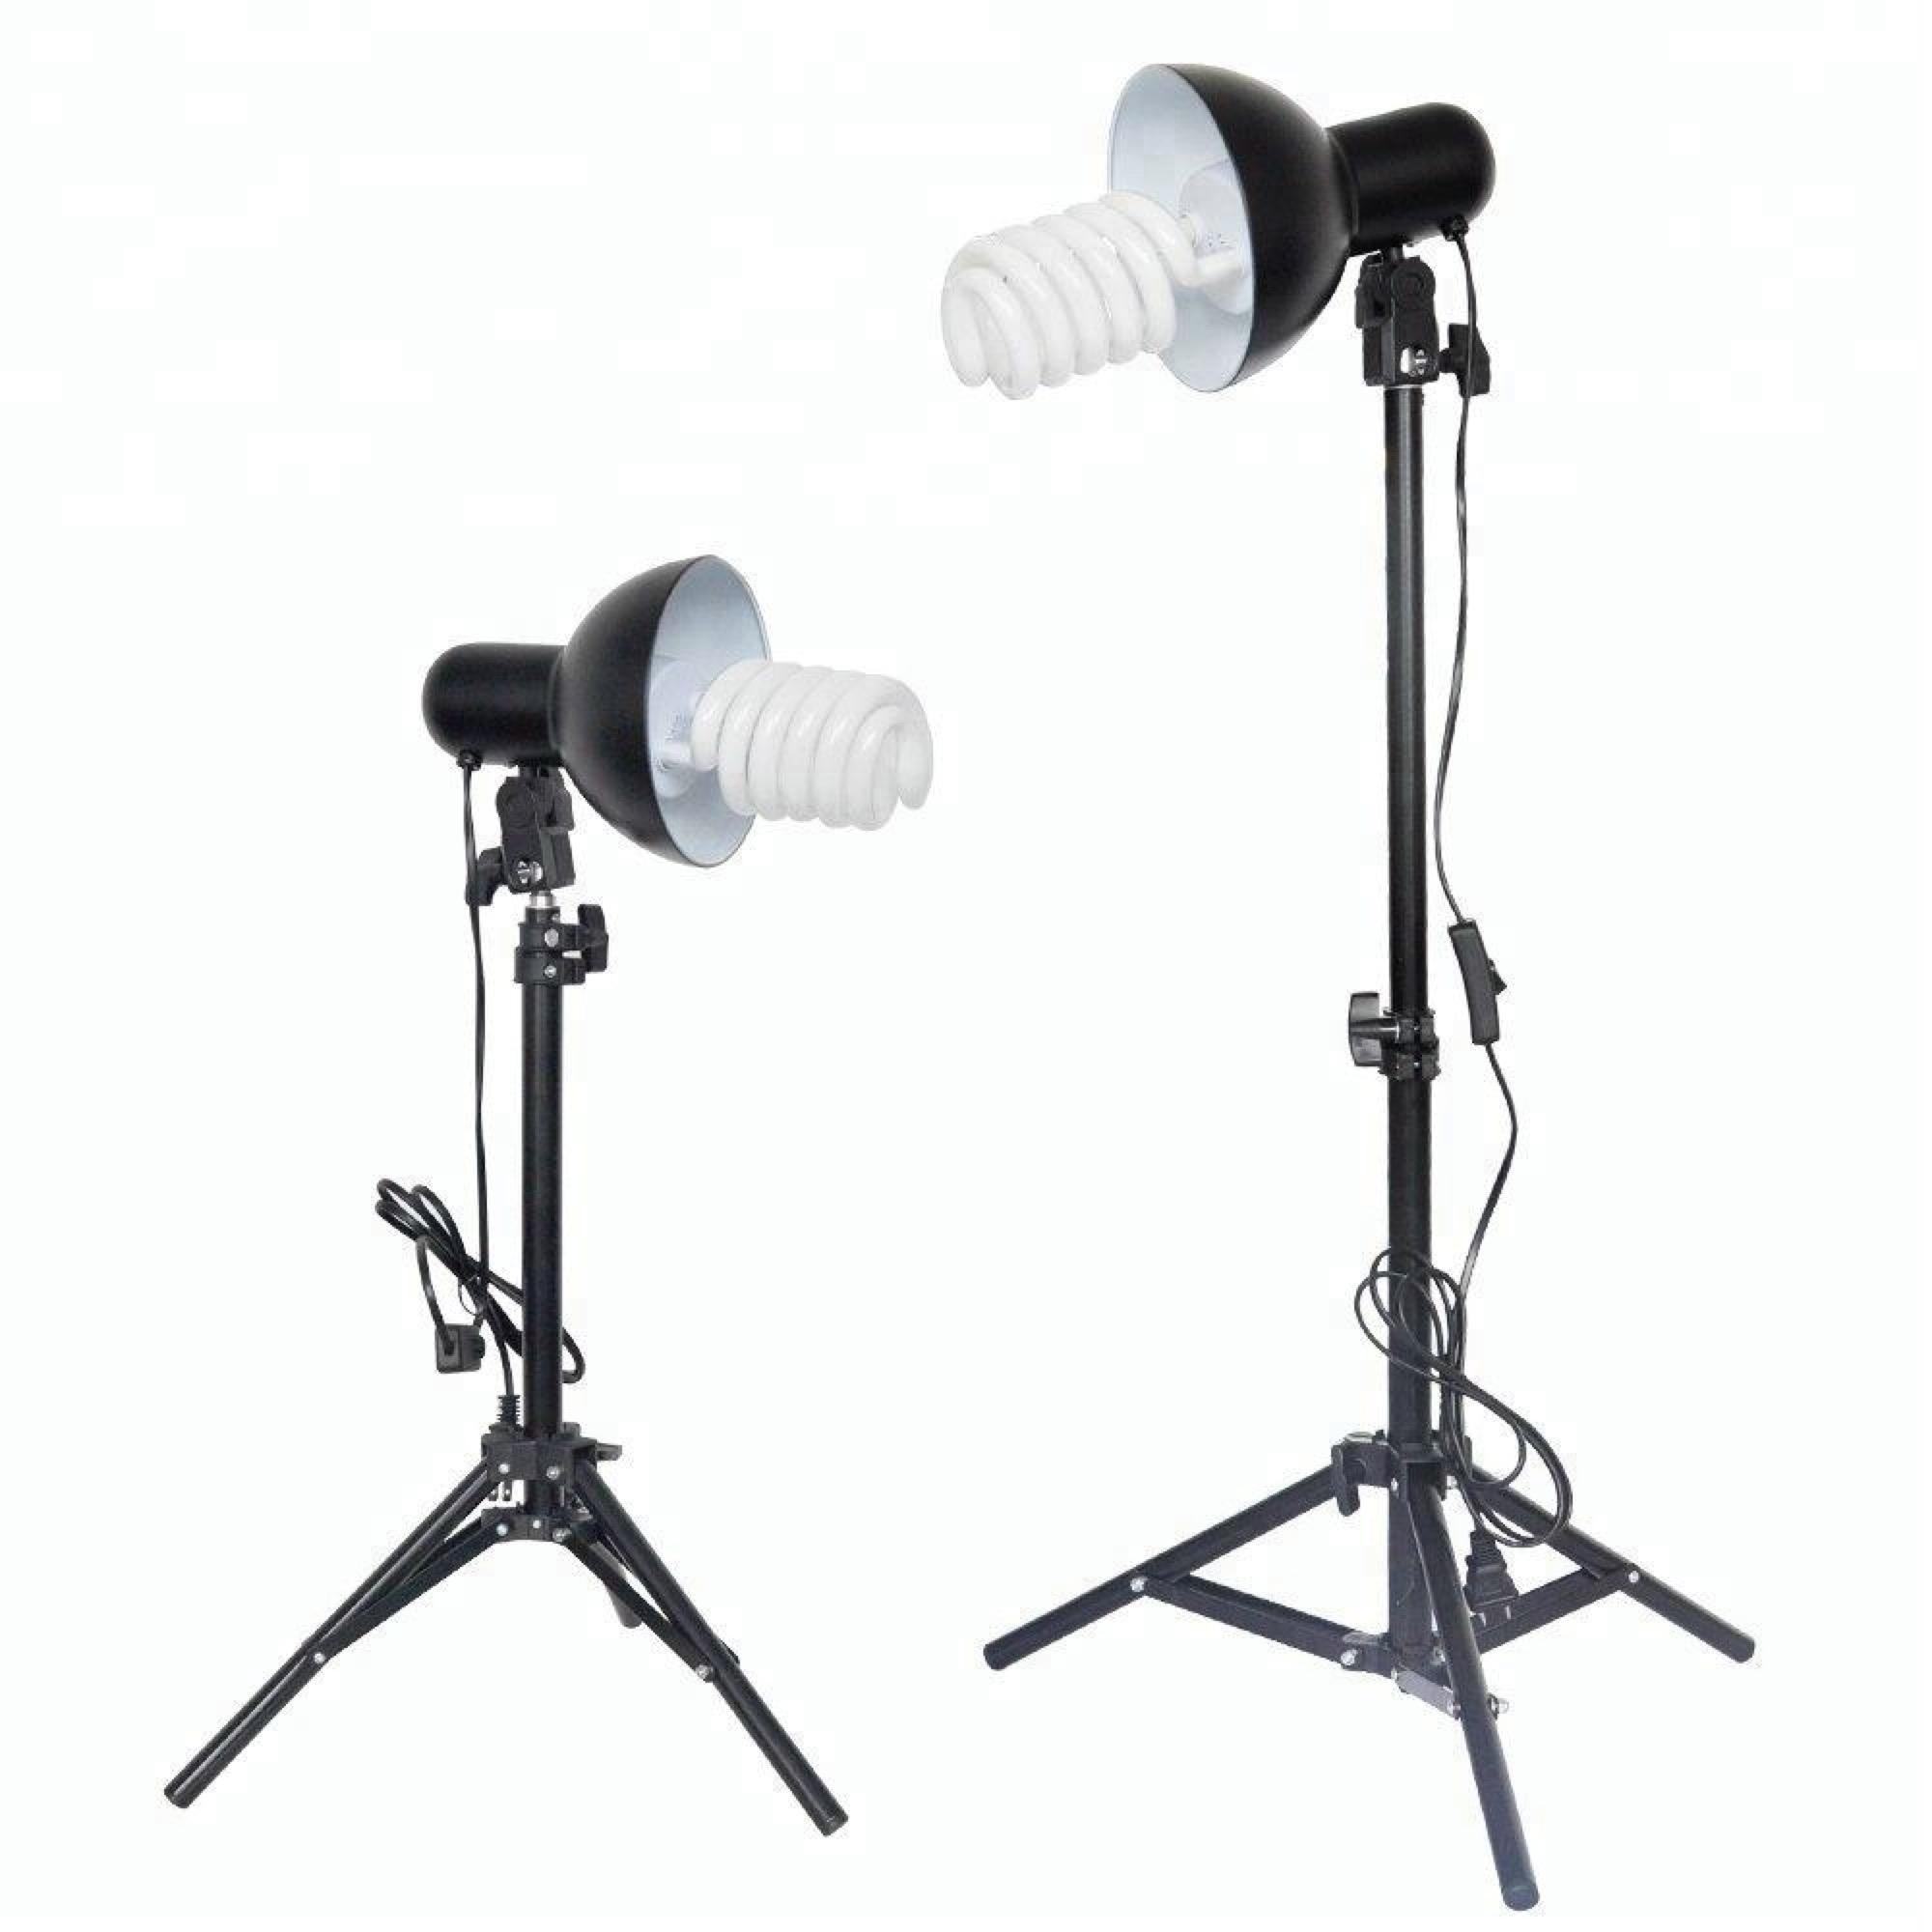 2 Ps01 400ワットStudio Light With Tripod Reflector Daylight Kit For Photography